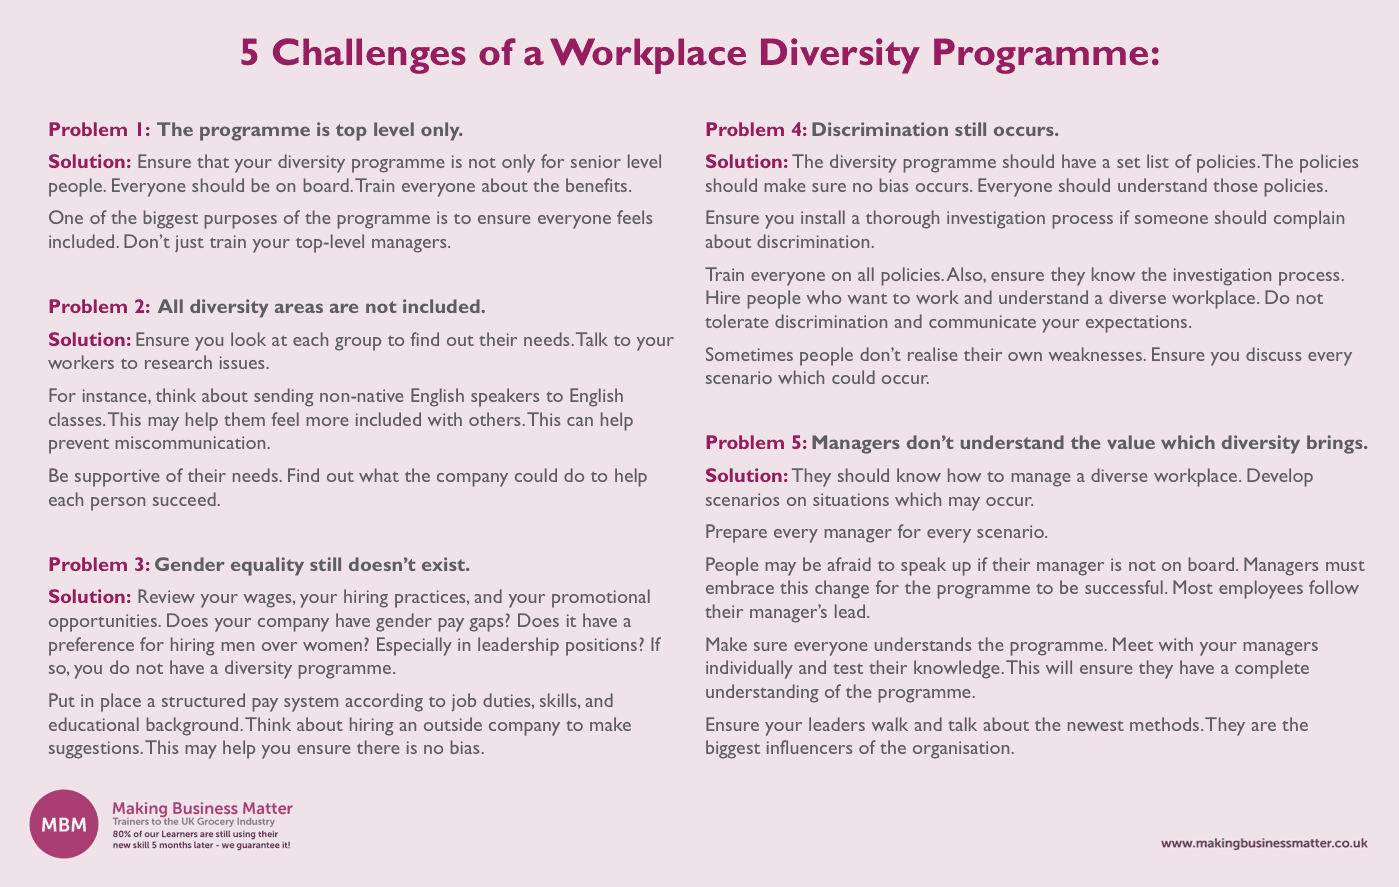 5 challenges of a workplace diversity programme